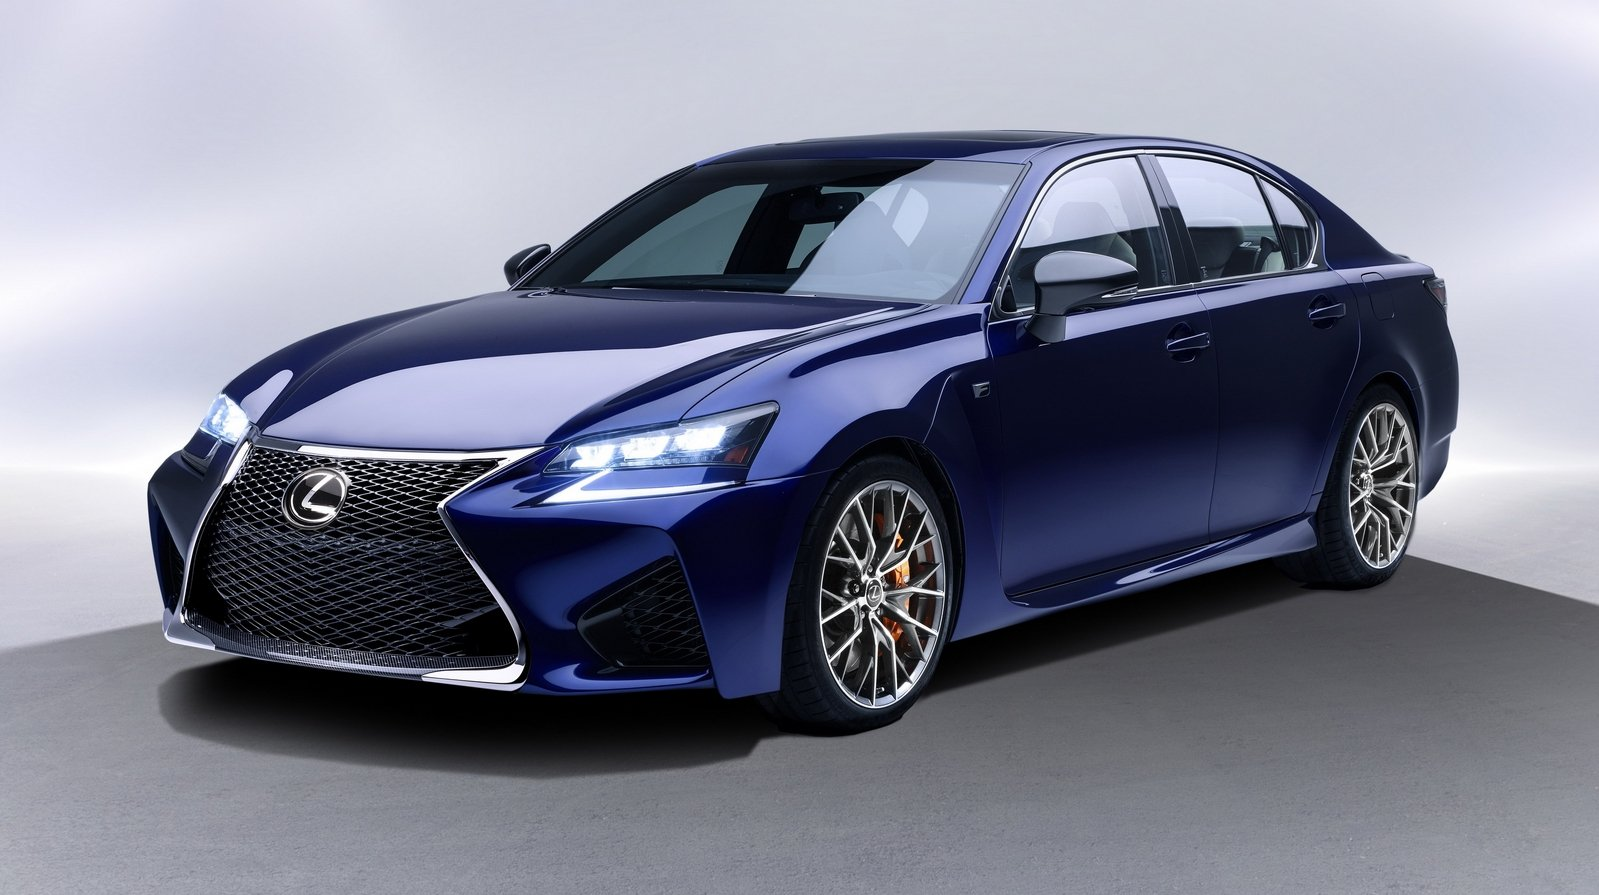 2016 lexus gs f picture 609006 car review top speed. Black Bedroom Furniture Sets. Home Design Ideas